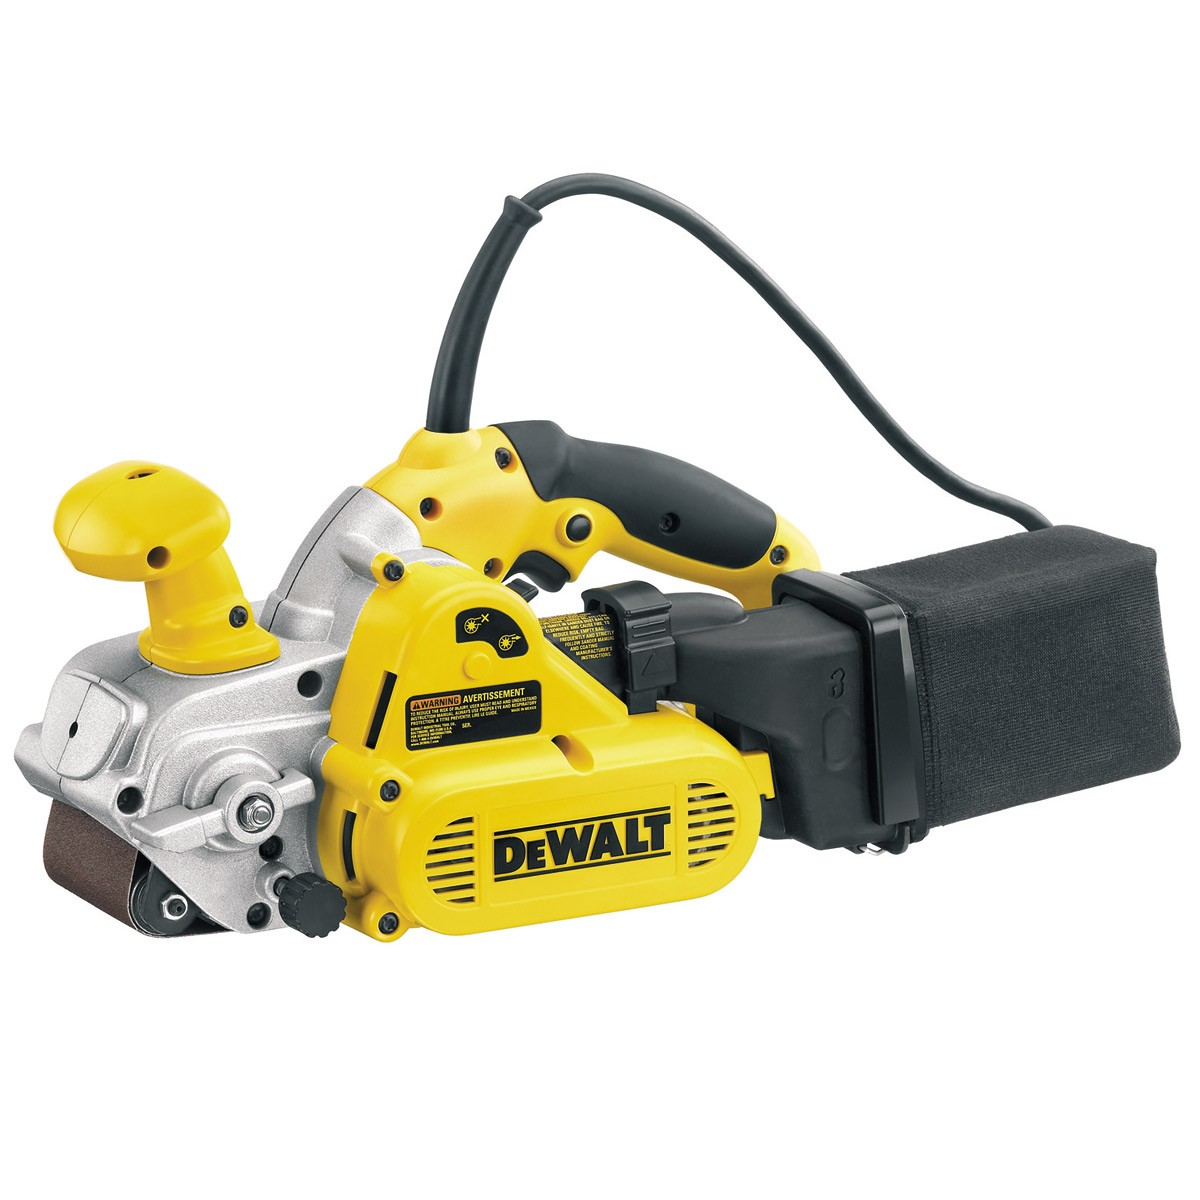 DeWalt DW433 75mm 800w Electronic Belt Sander 110v